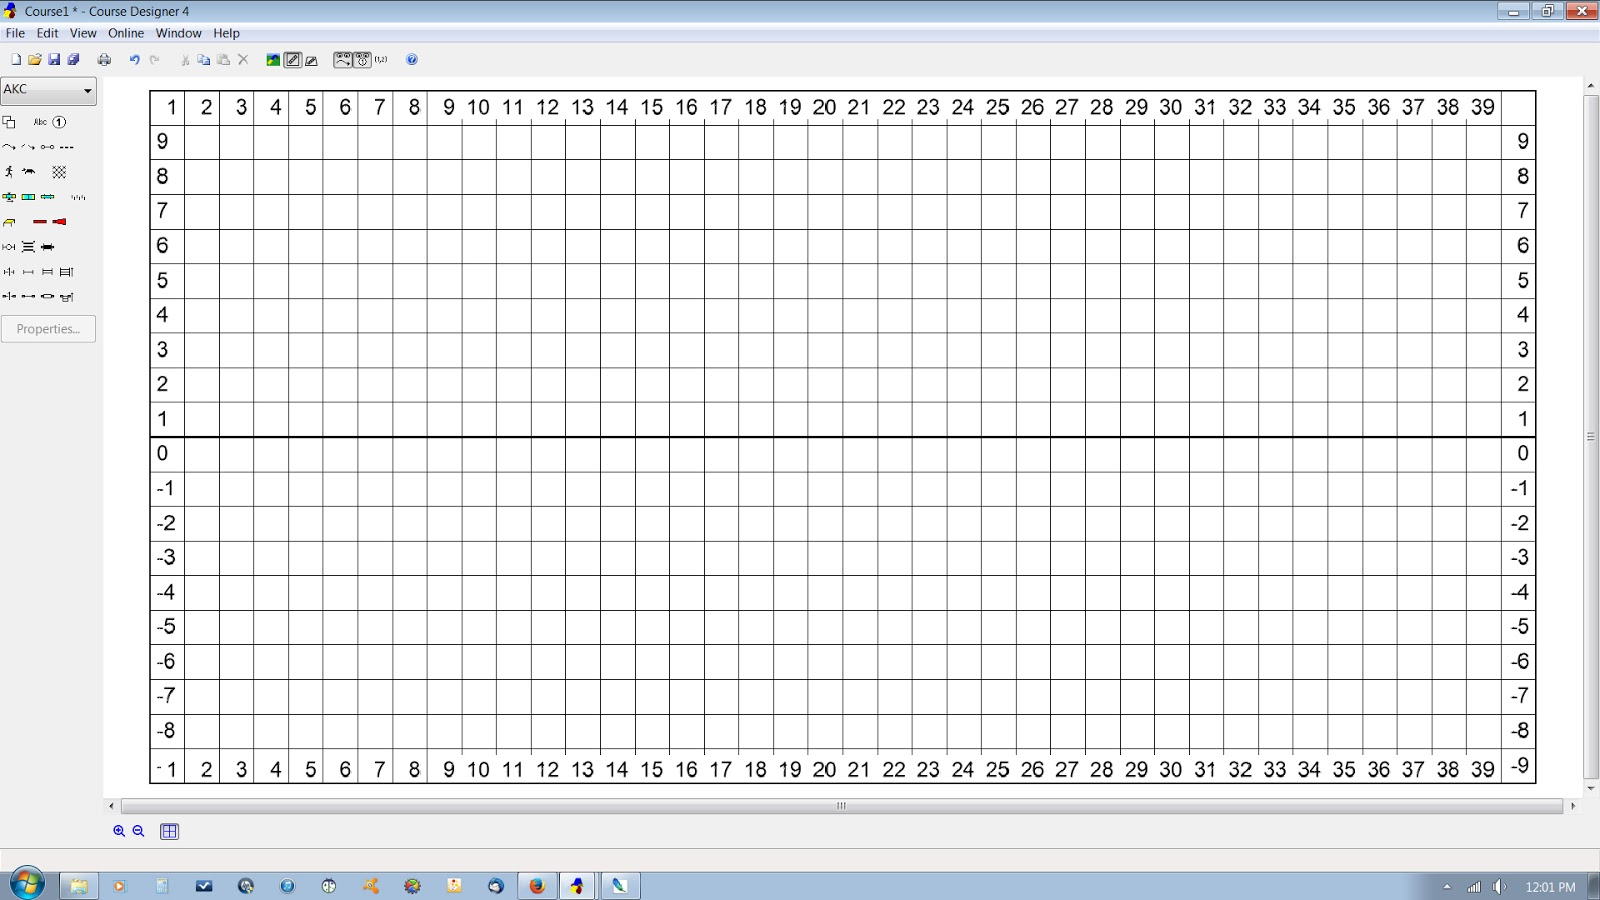 Beautiful 10 Window Envelope Template Tiny 10 Words Not To Put On Your Resume Regular 15 Year Old First Job Resume 2 Page Brochure Template Young 2014 Resume Templates Microsoft Word Soft3 Different Resume Styles 10 X 10 Coordinate Grid Pictures To Pin On Pinterest   PinsDaddy